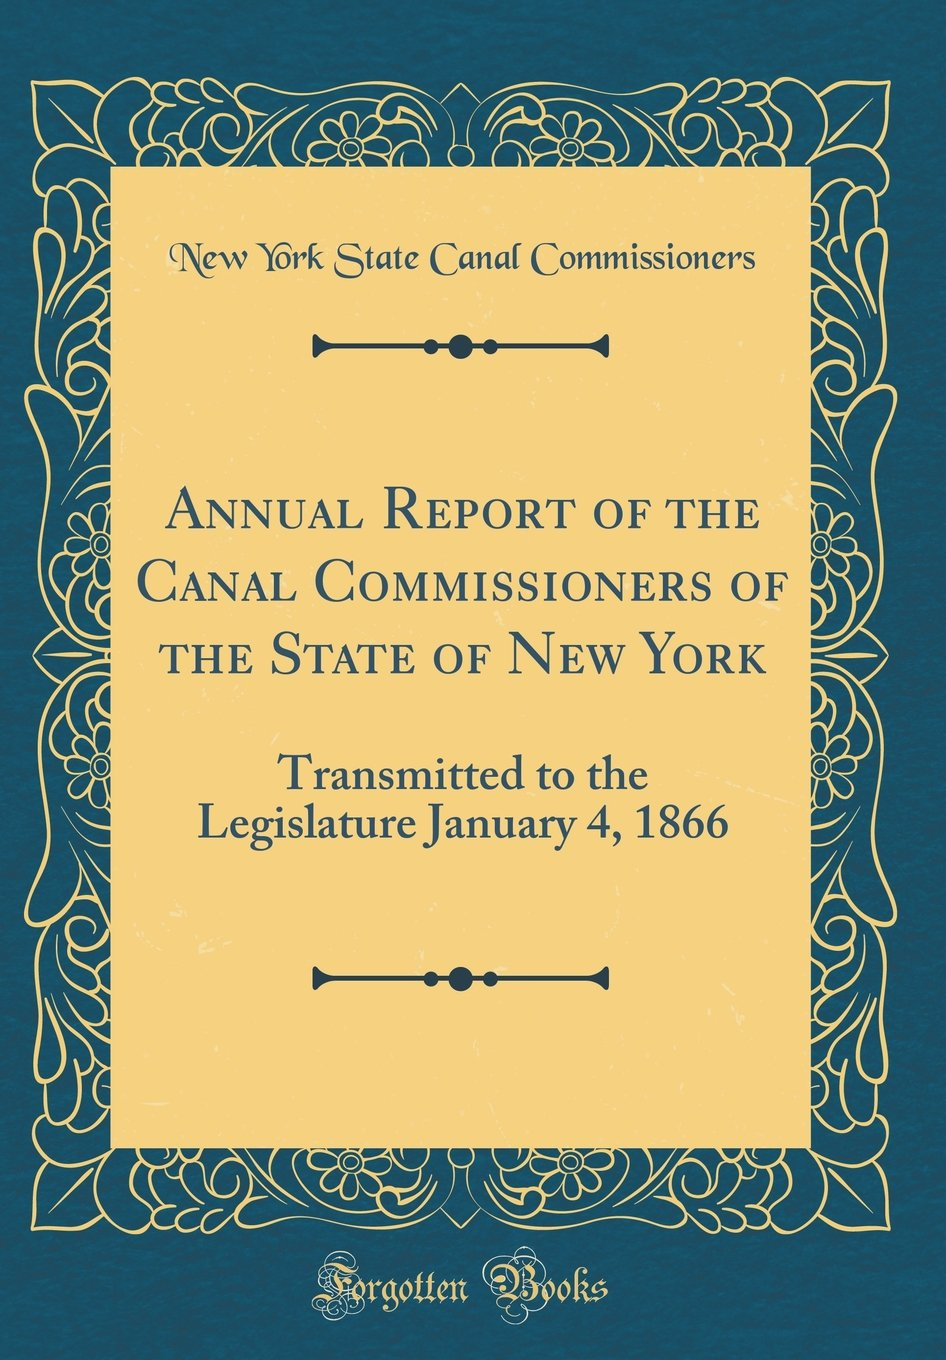 Annual Report of the Canal Commissioners of the State of New York: Transmitted to the Legislature January 4, 1866 (Classic Reprint) ebook